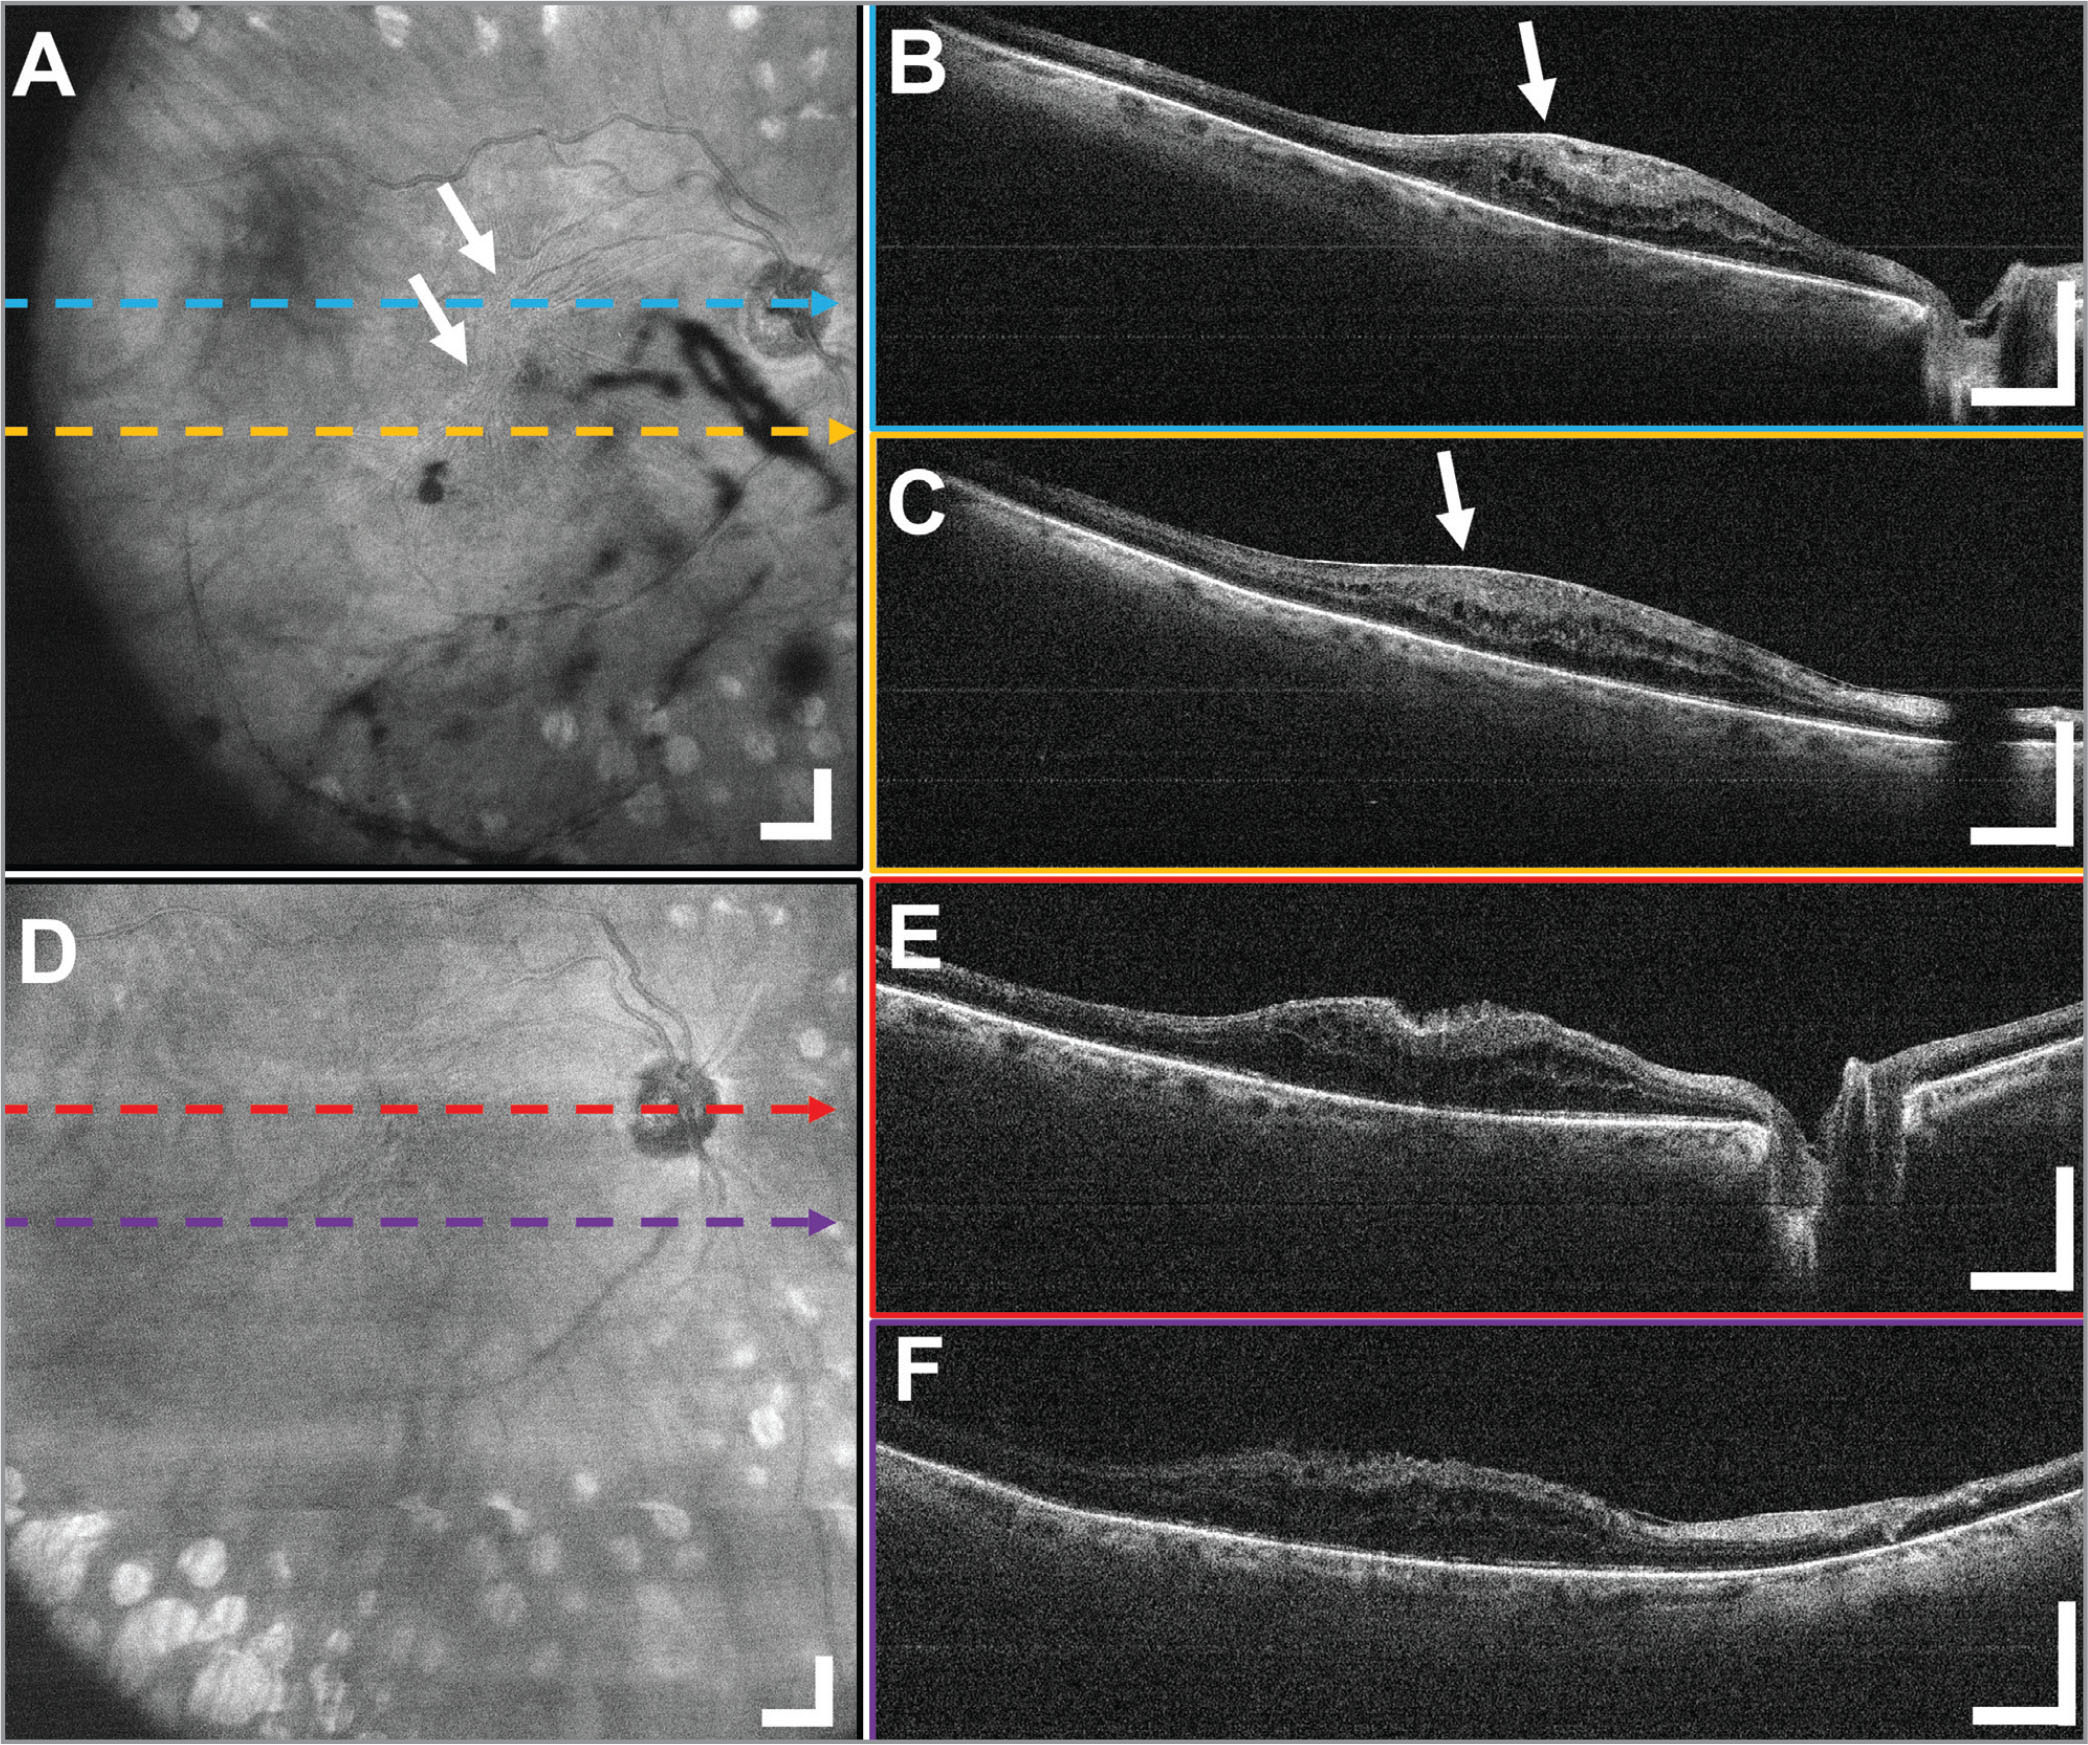 A 12 × 12 mm2 widefield imaging in the right eye of a 69-year-old female subject before and after epiretinal membrane (ERM) peel through the standard 80 diopter non-contact fundus lens. The pathological region of macular pucker can be seen in the (A) en face projection as wrinkling of the retinal surface shown with arrows and (B, C) B-scans as a bright band between the retina and vitreous interface indicated with the arrow. (D–F) The postoperative widefield images of the same patient show the extent of the removal of the ERM and the feathery appearance of the interface between the retina and vitreous. Displayed B-scans are averages of five adjacent B-scans. Scale bars are 1 mm.